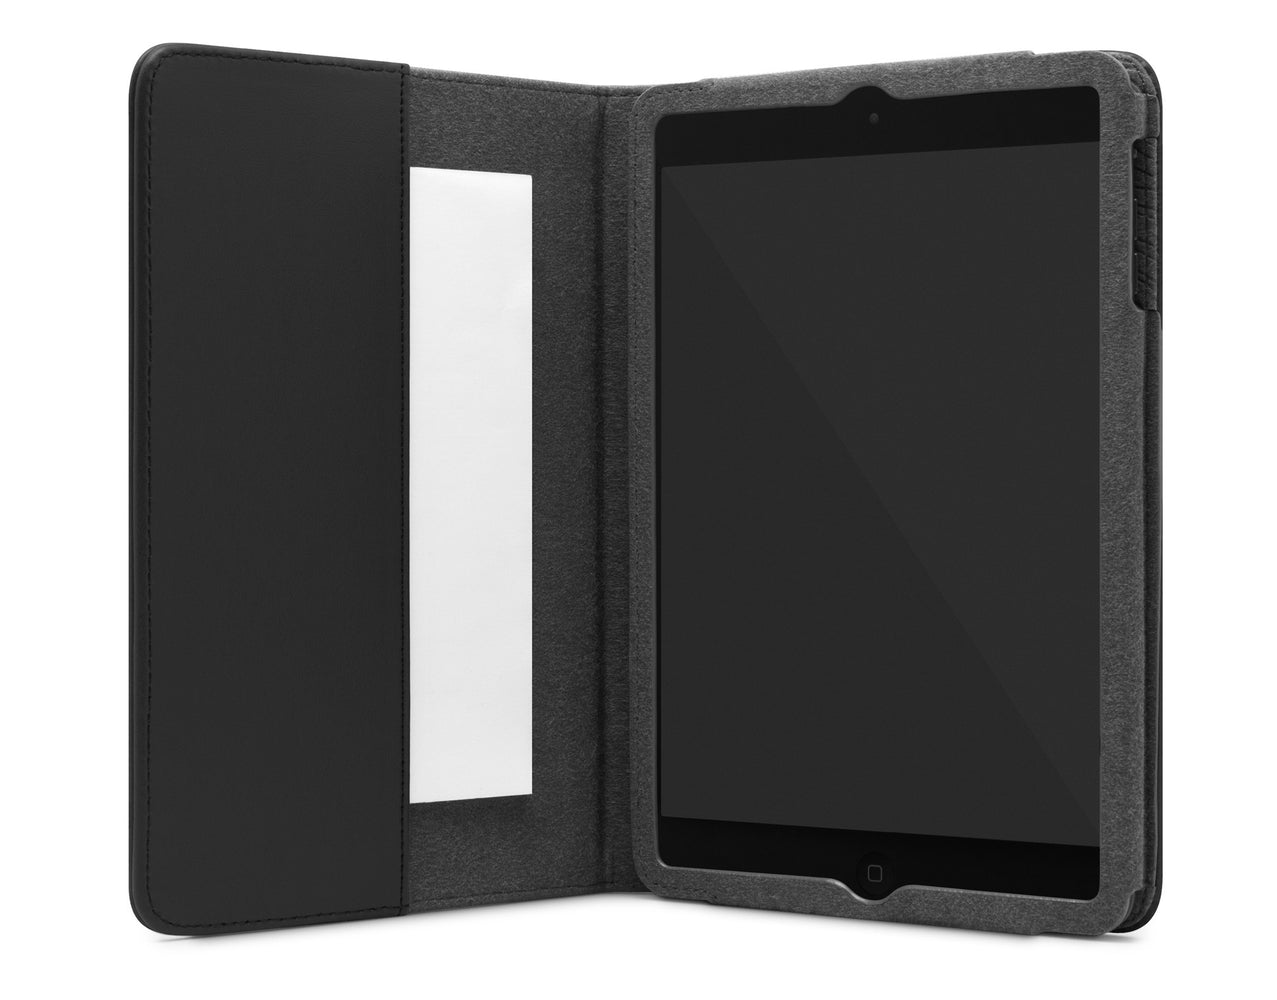 Incase Folio for iPad Mini